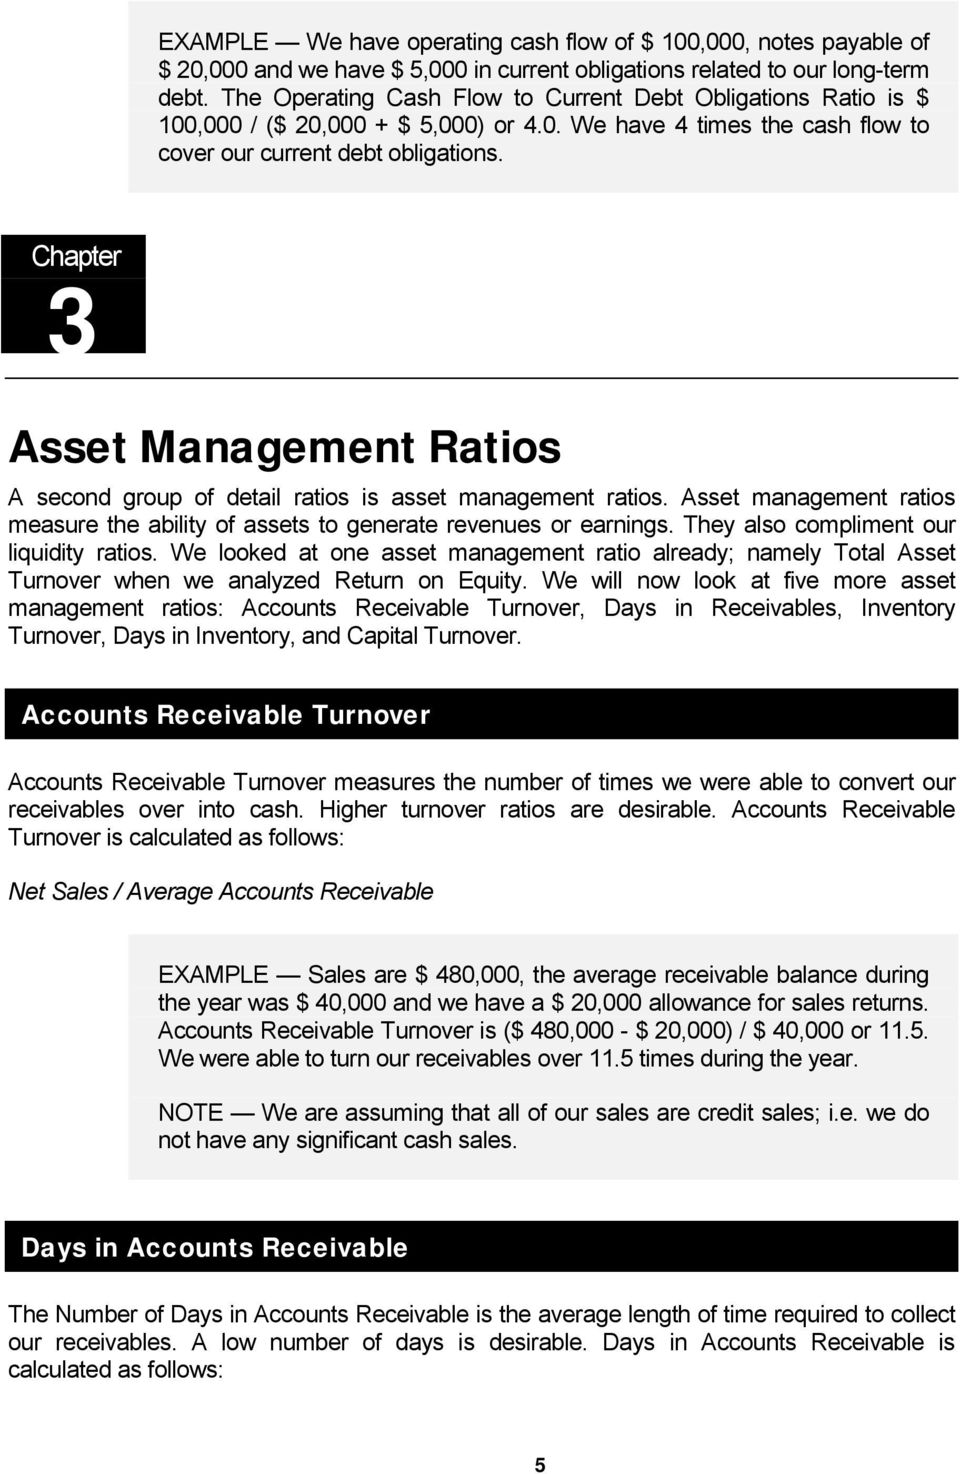 Chapter 3 Asset Management Ratios A second group of detail ratios is asset management ratios. Asset management ratios measure the ability of assets to generate revenues or earnings.